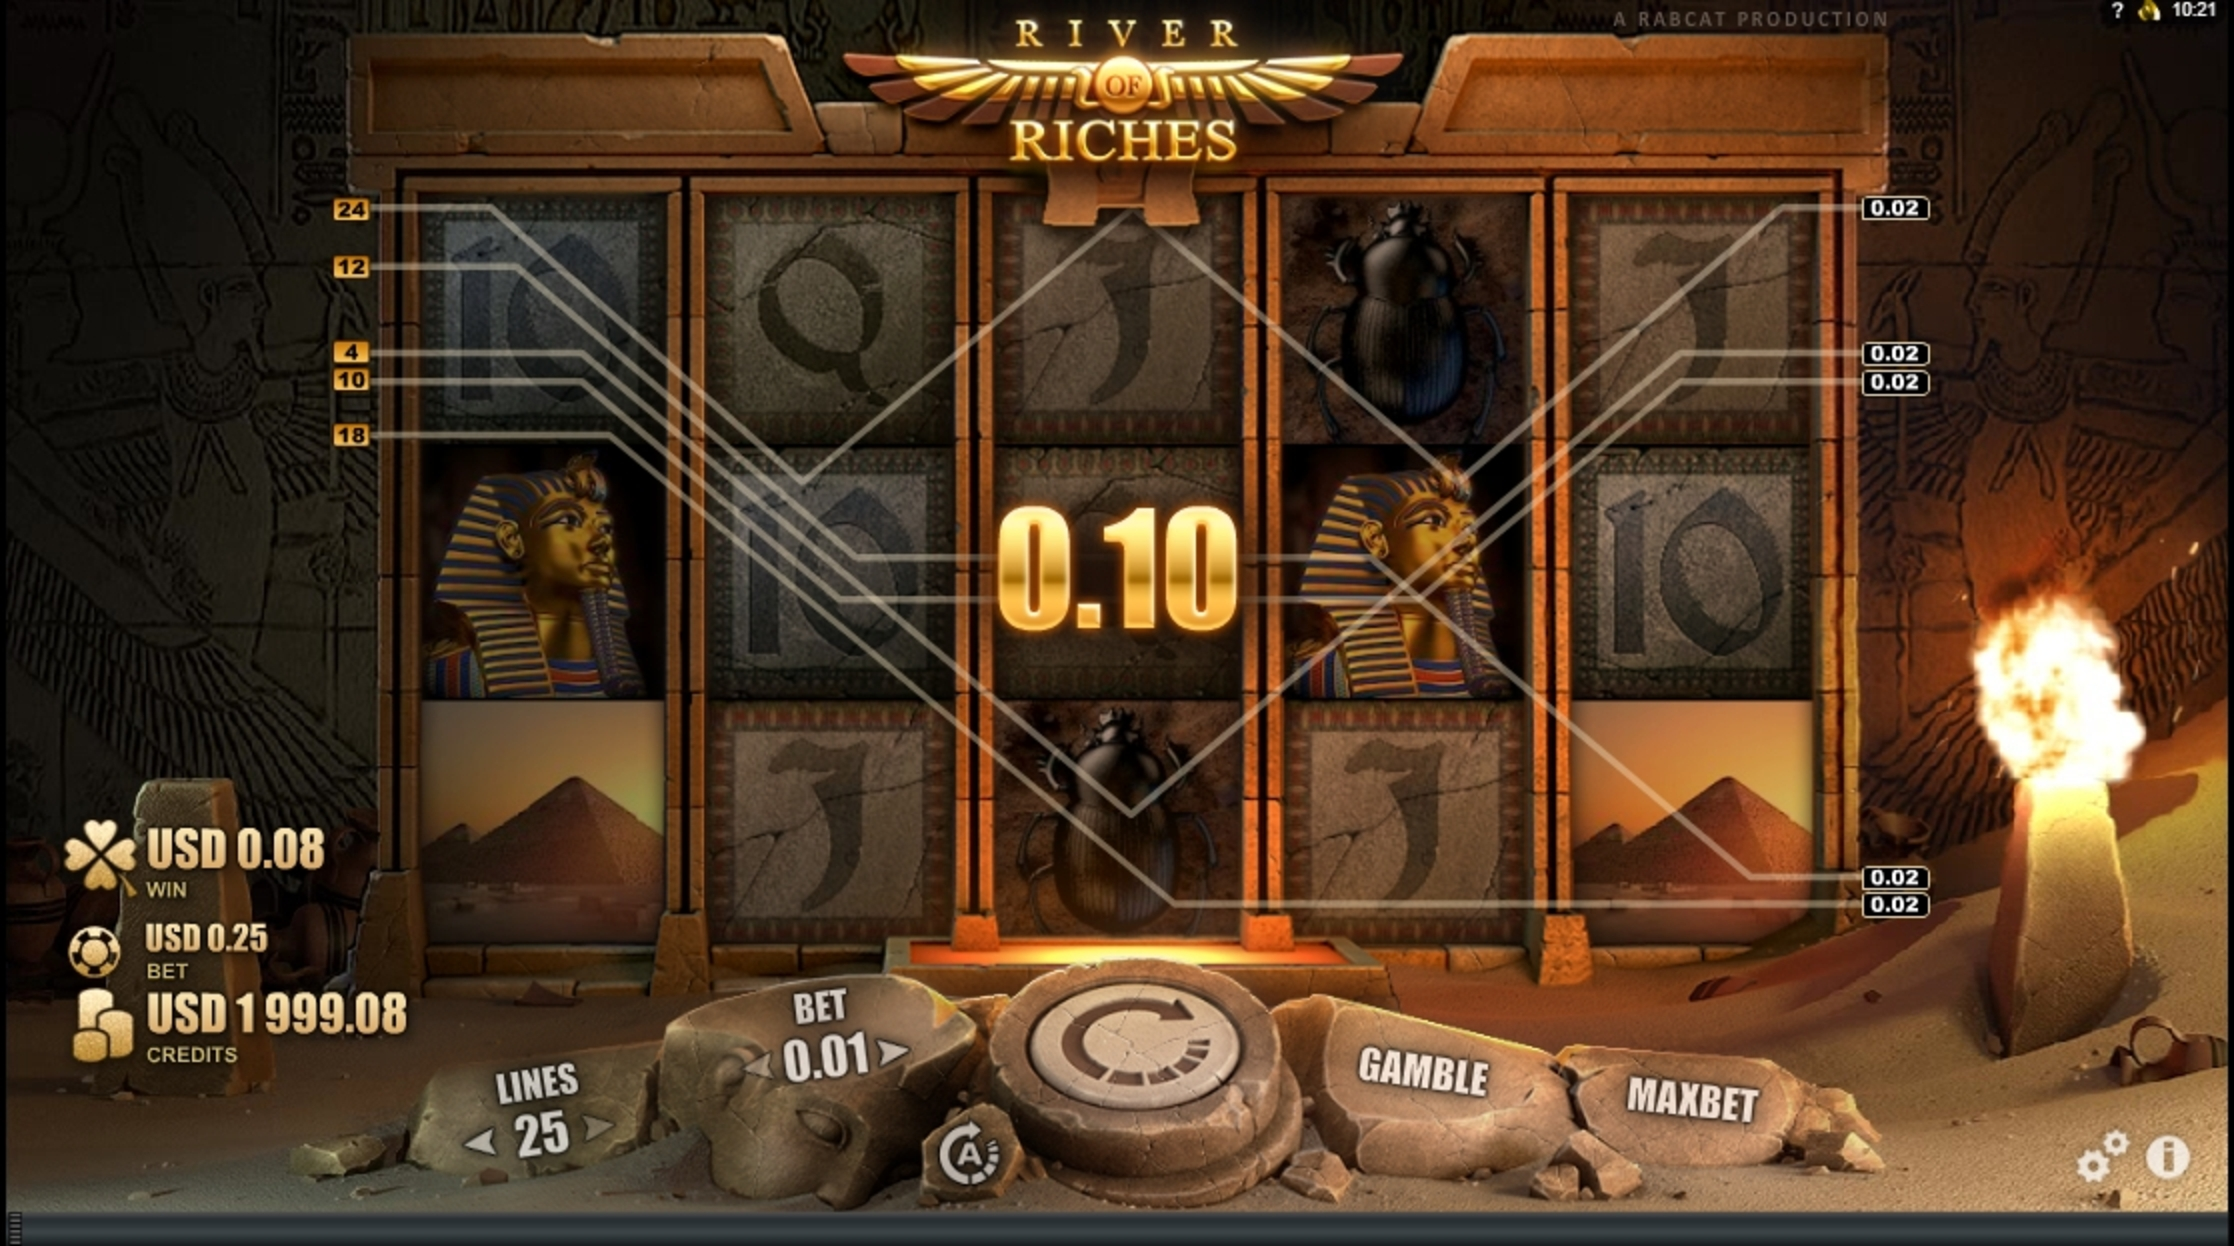 Win Money in River of Riches Free Slot Game by Rabcat